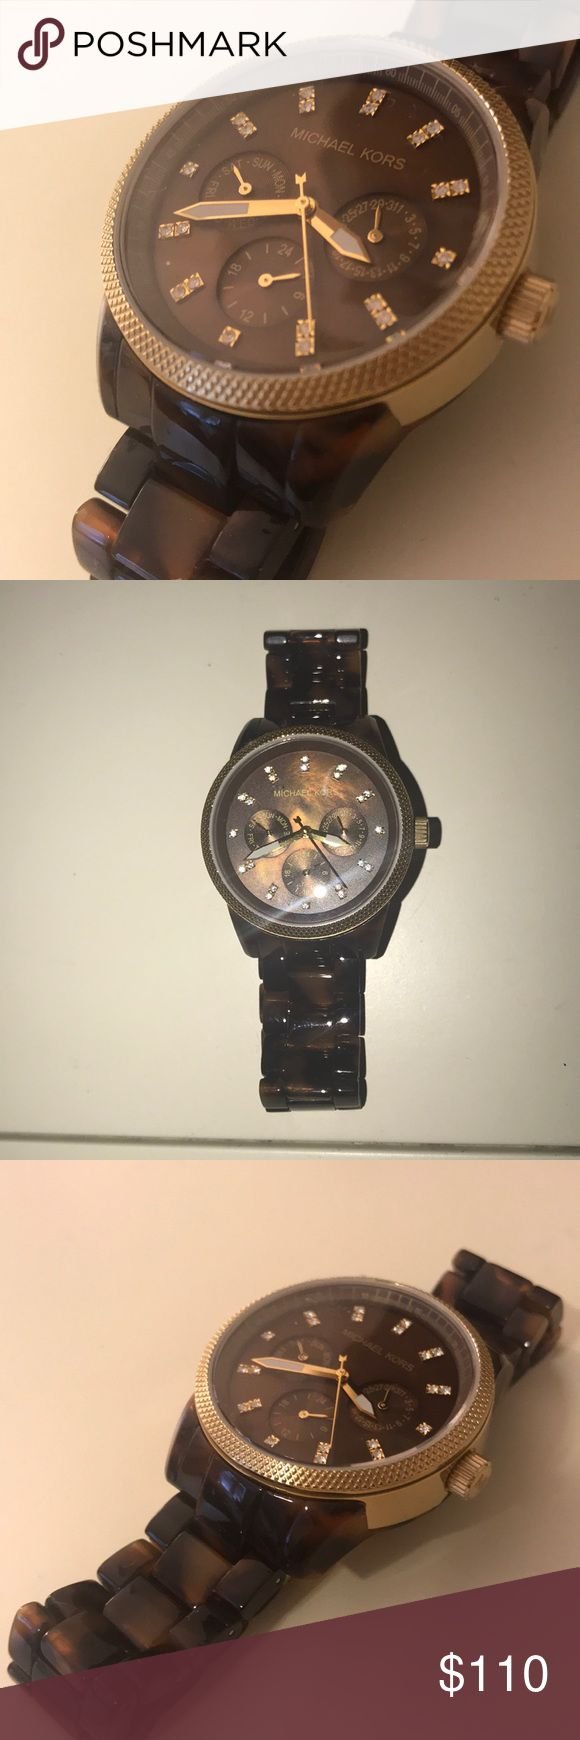 NEW Michael Kors Watch Tortoise shell watch with gold detail. Never worn. Beautiful details. Brand new. Michael Kors Accessories Watches